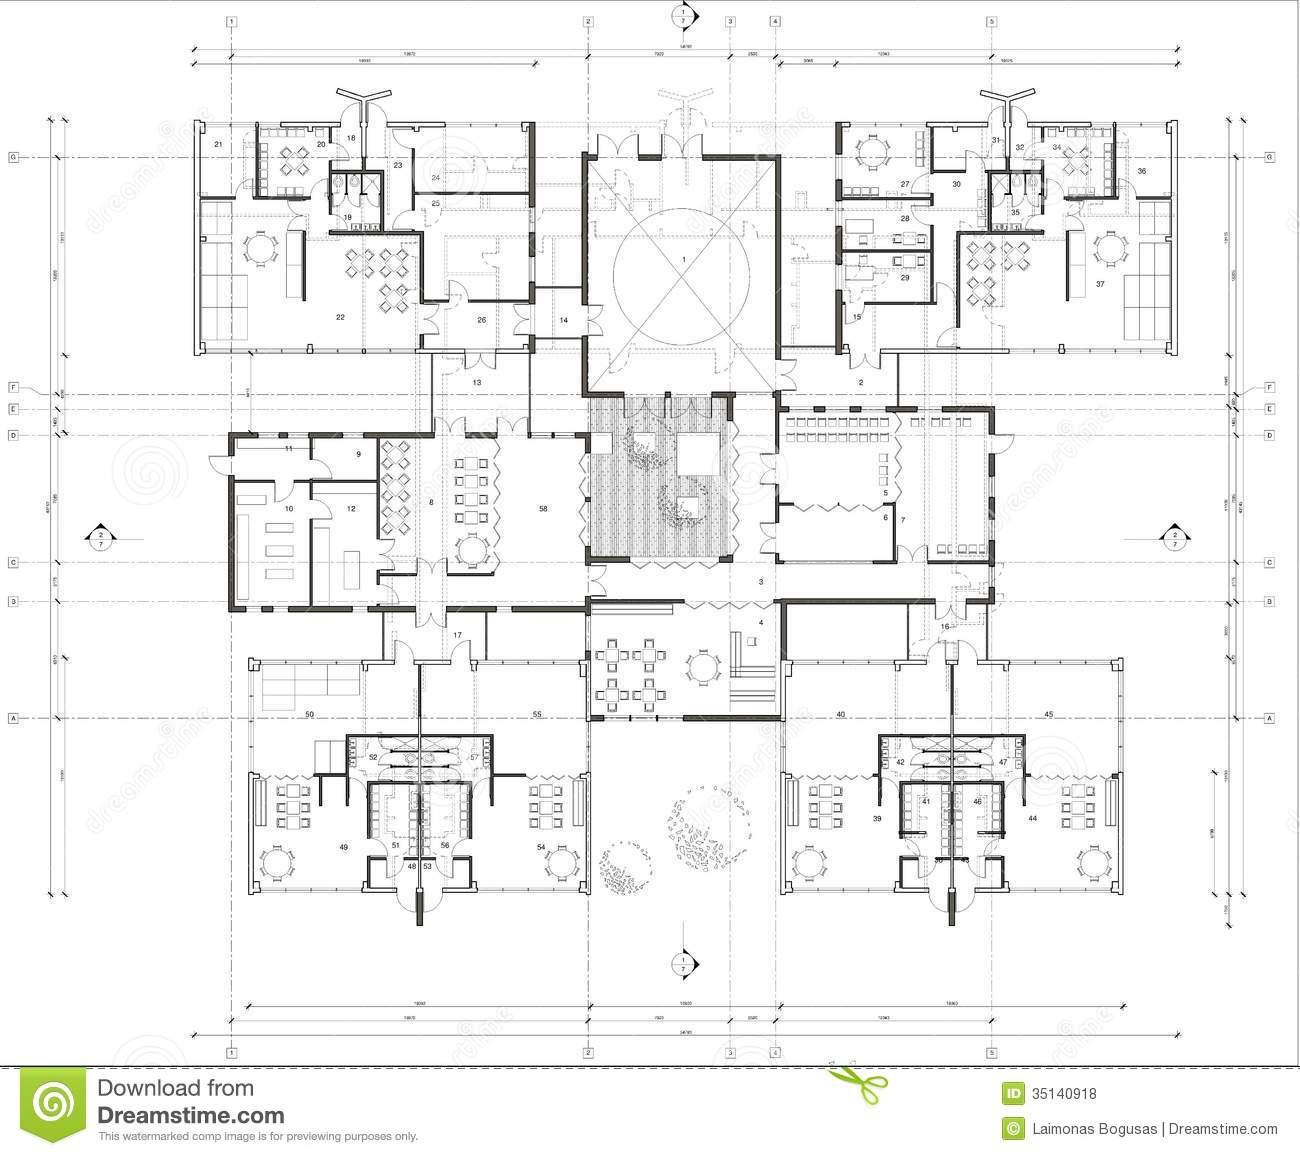 Floor plan of the kindergarten stock illustration illustration of ground illustration 35140918 - Floor plans for free paint ...